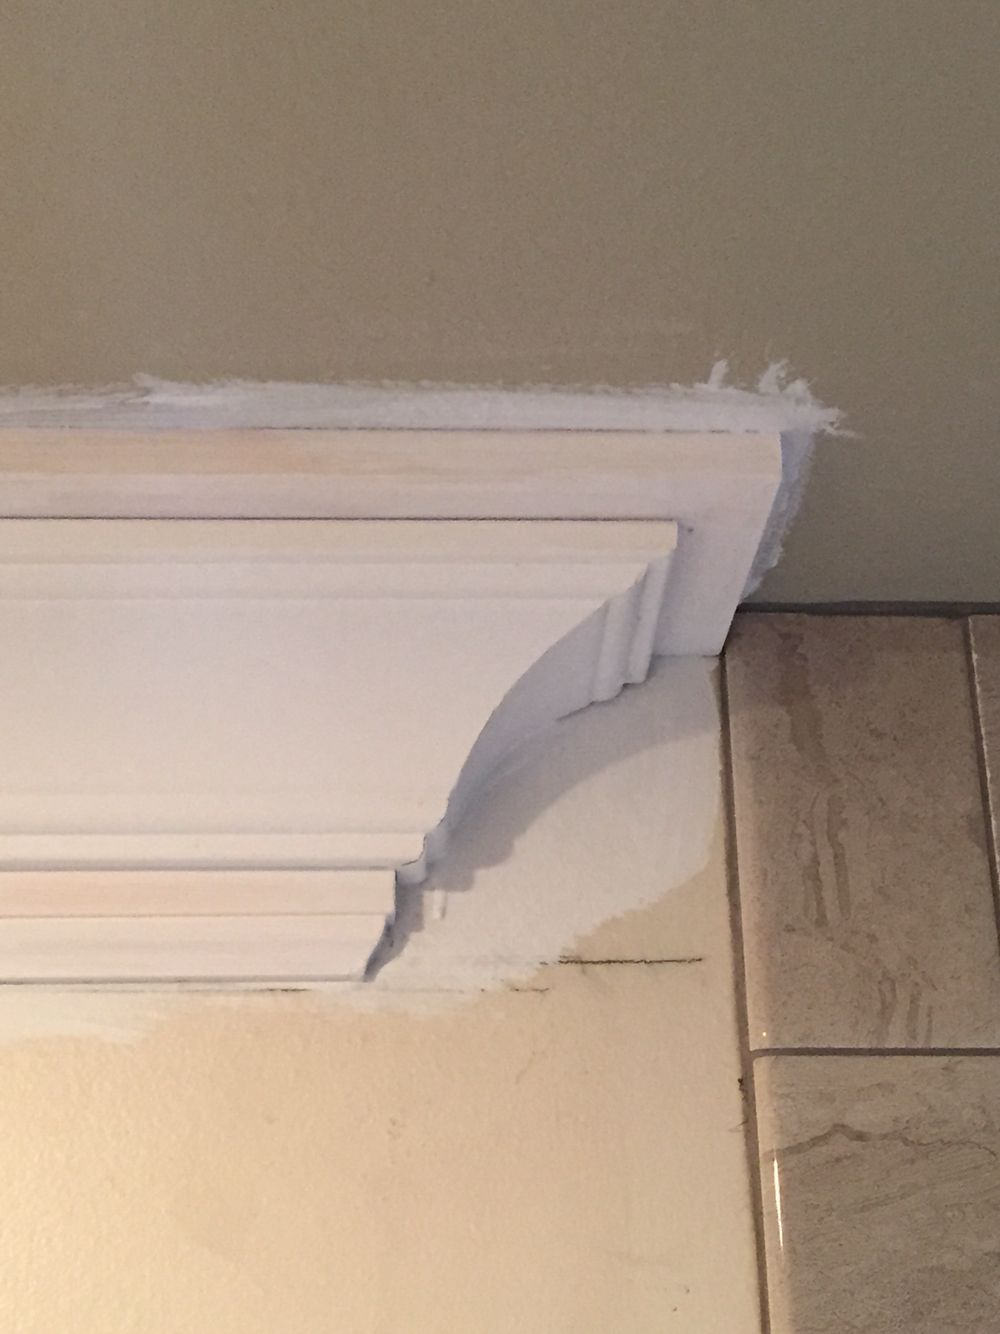 Craftsman Style Crown Molding Termination Return Before Caulking And Painting At Shower Tile